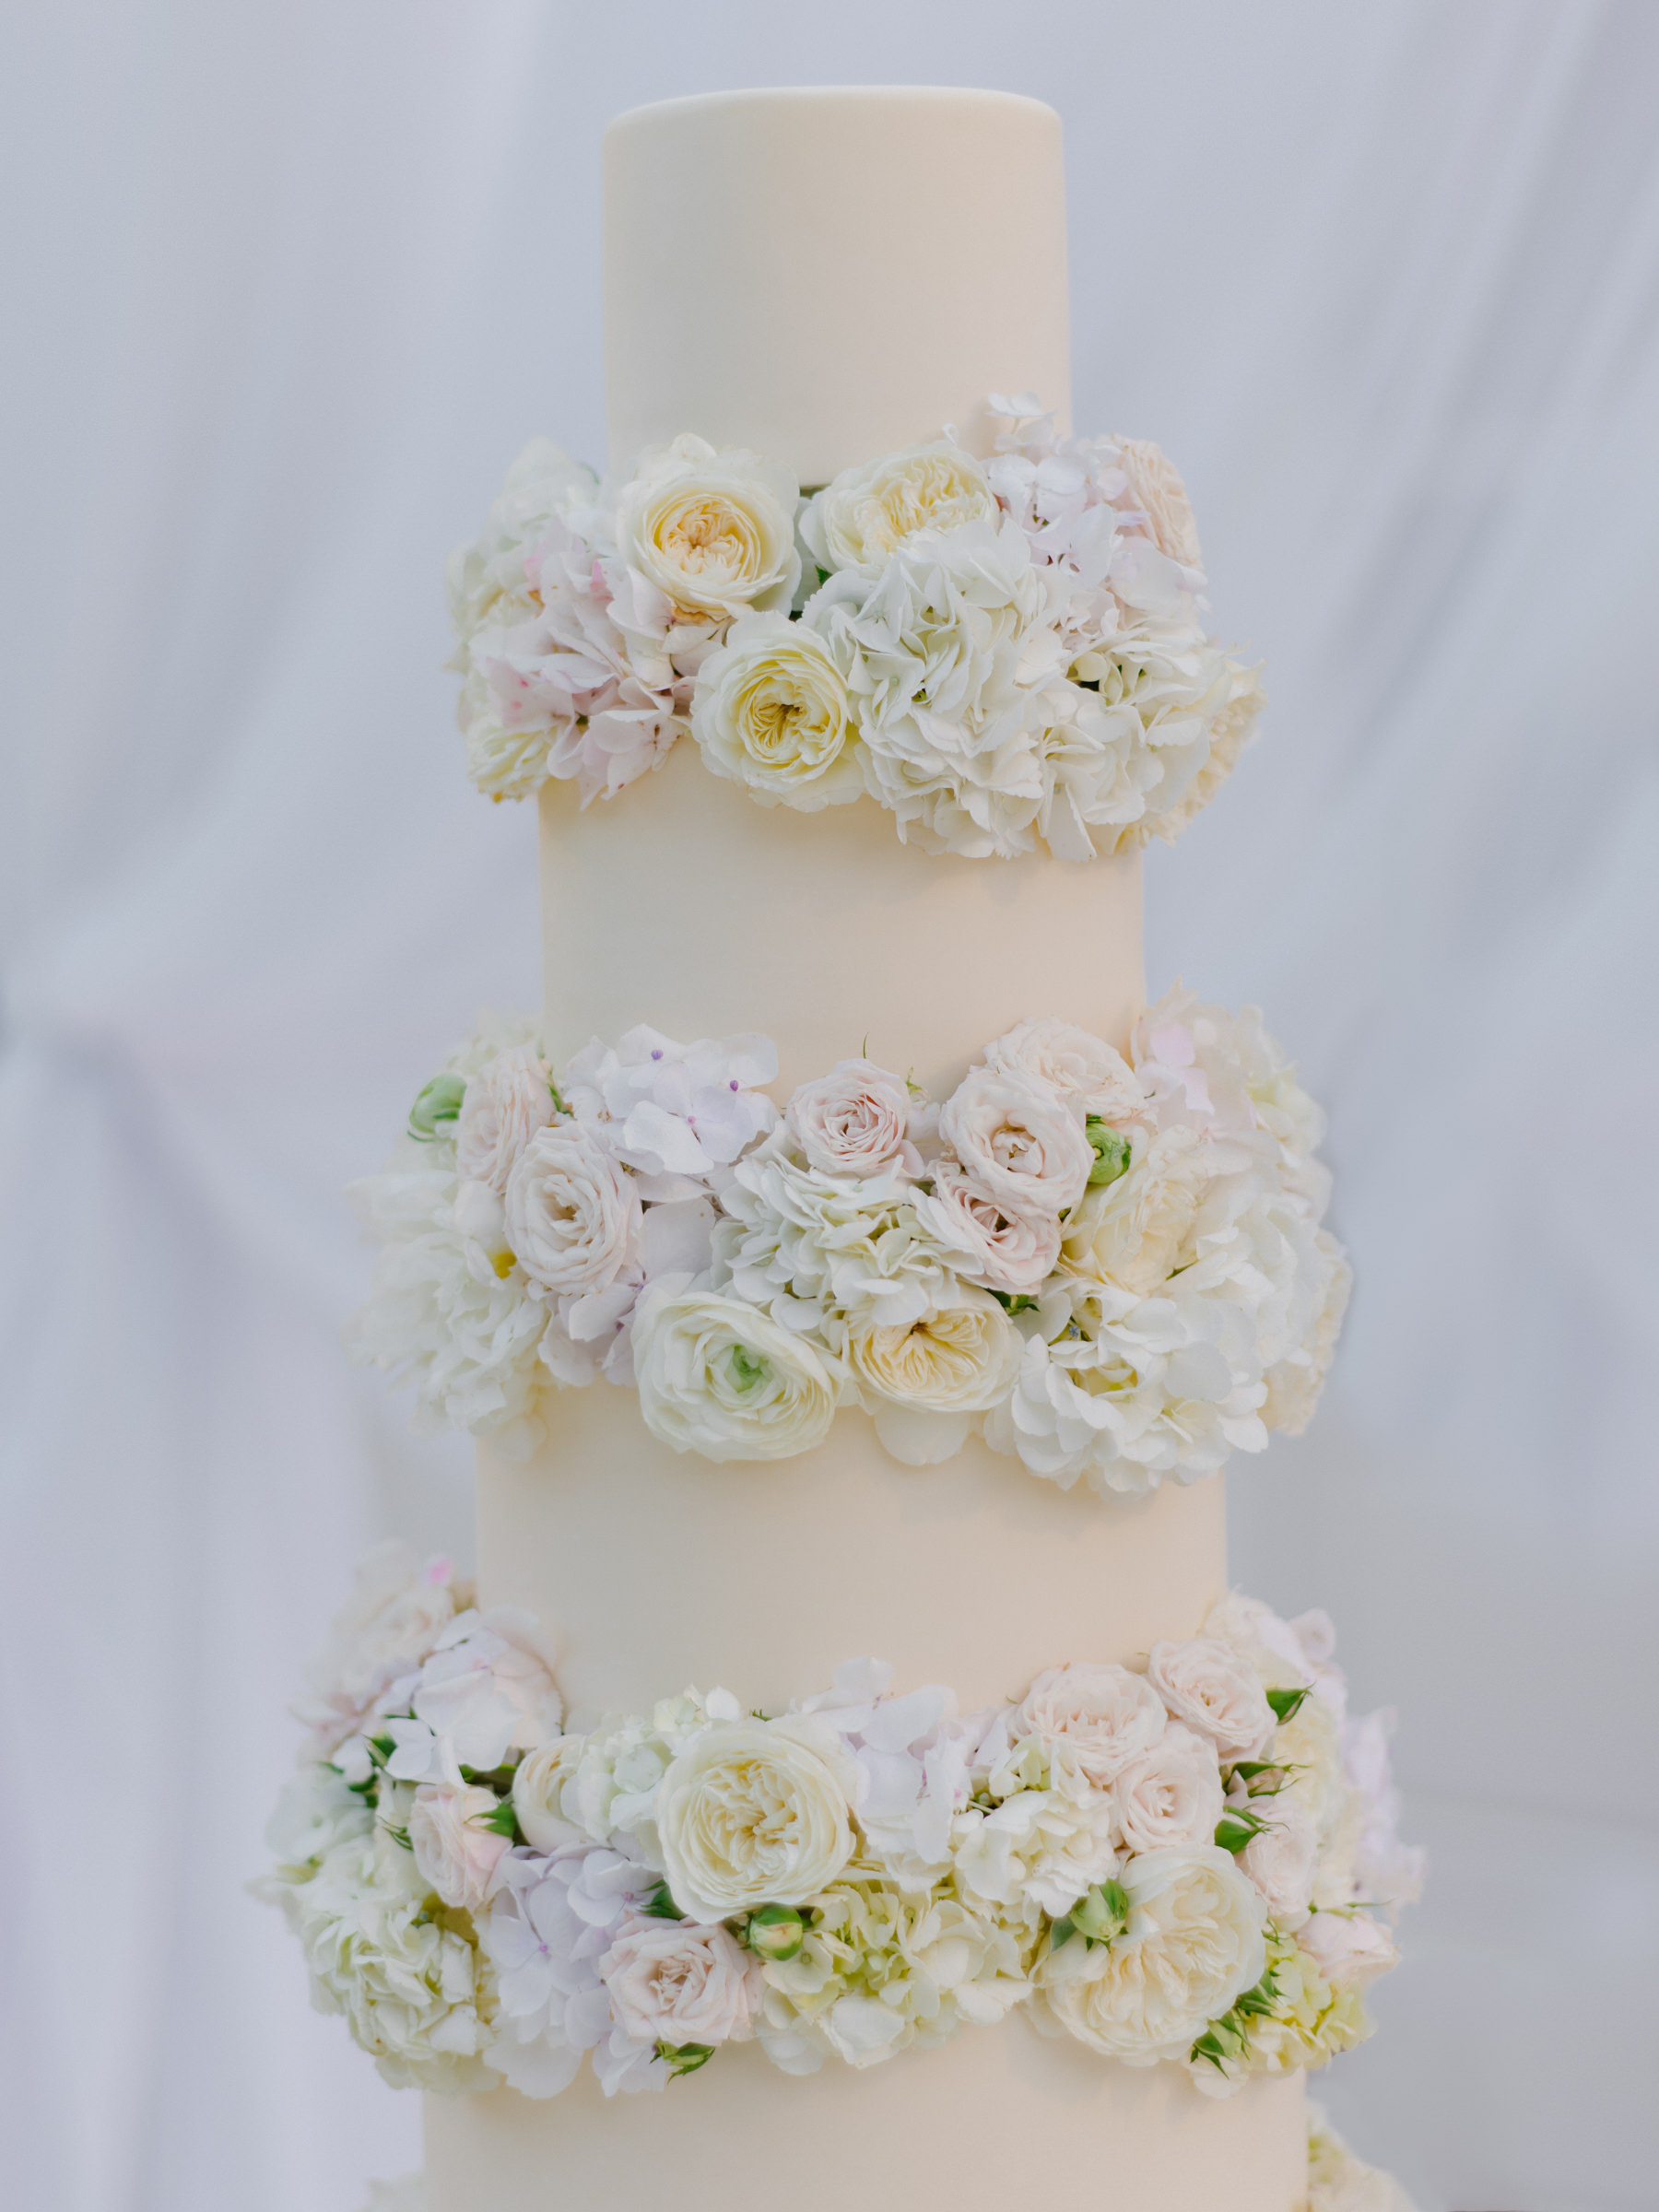 Fondant wedding cake with white, yellow, and pink rose - photo by Amy and Stuart Photography